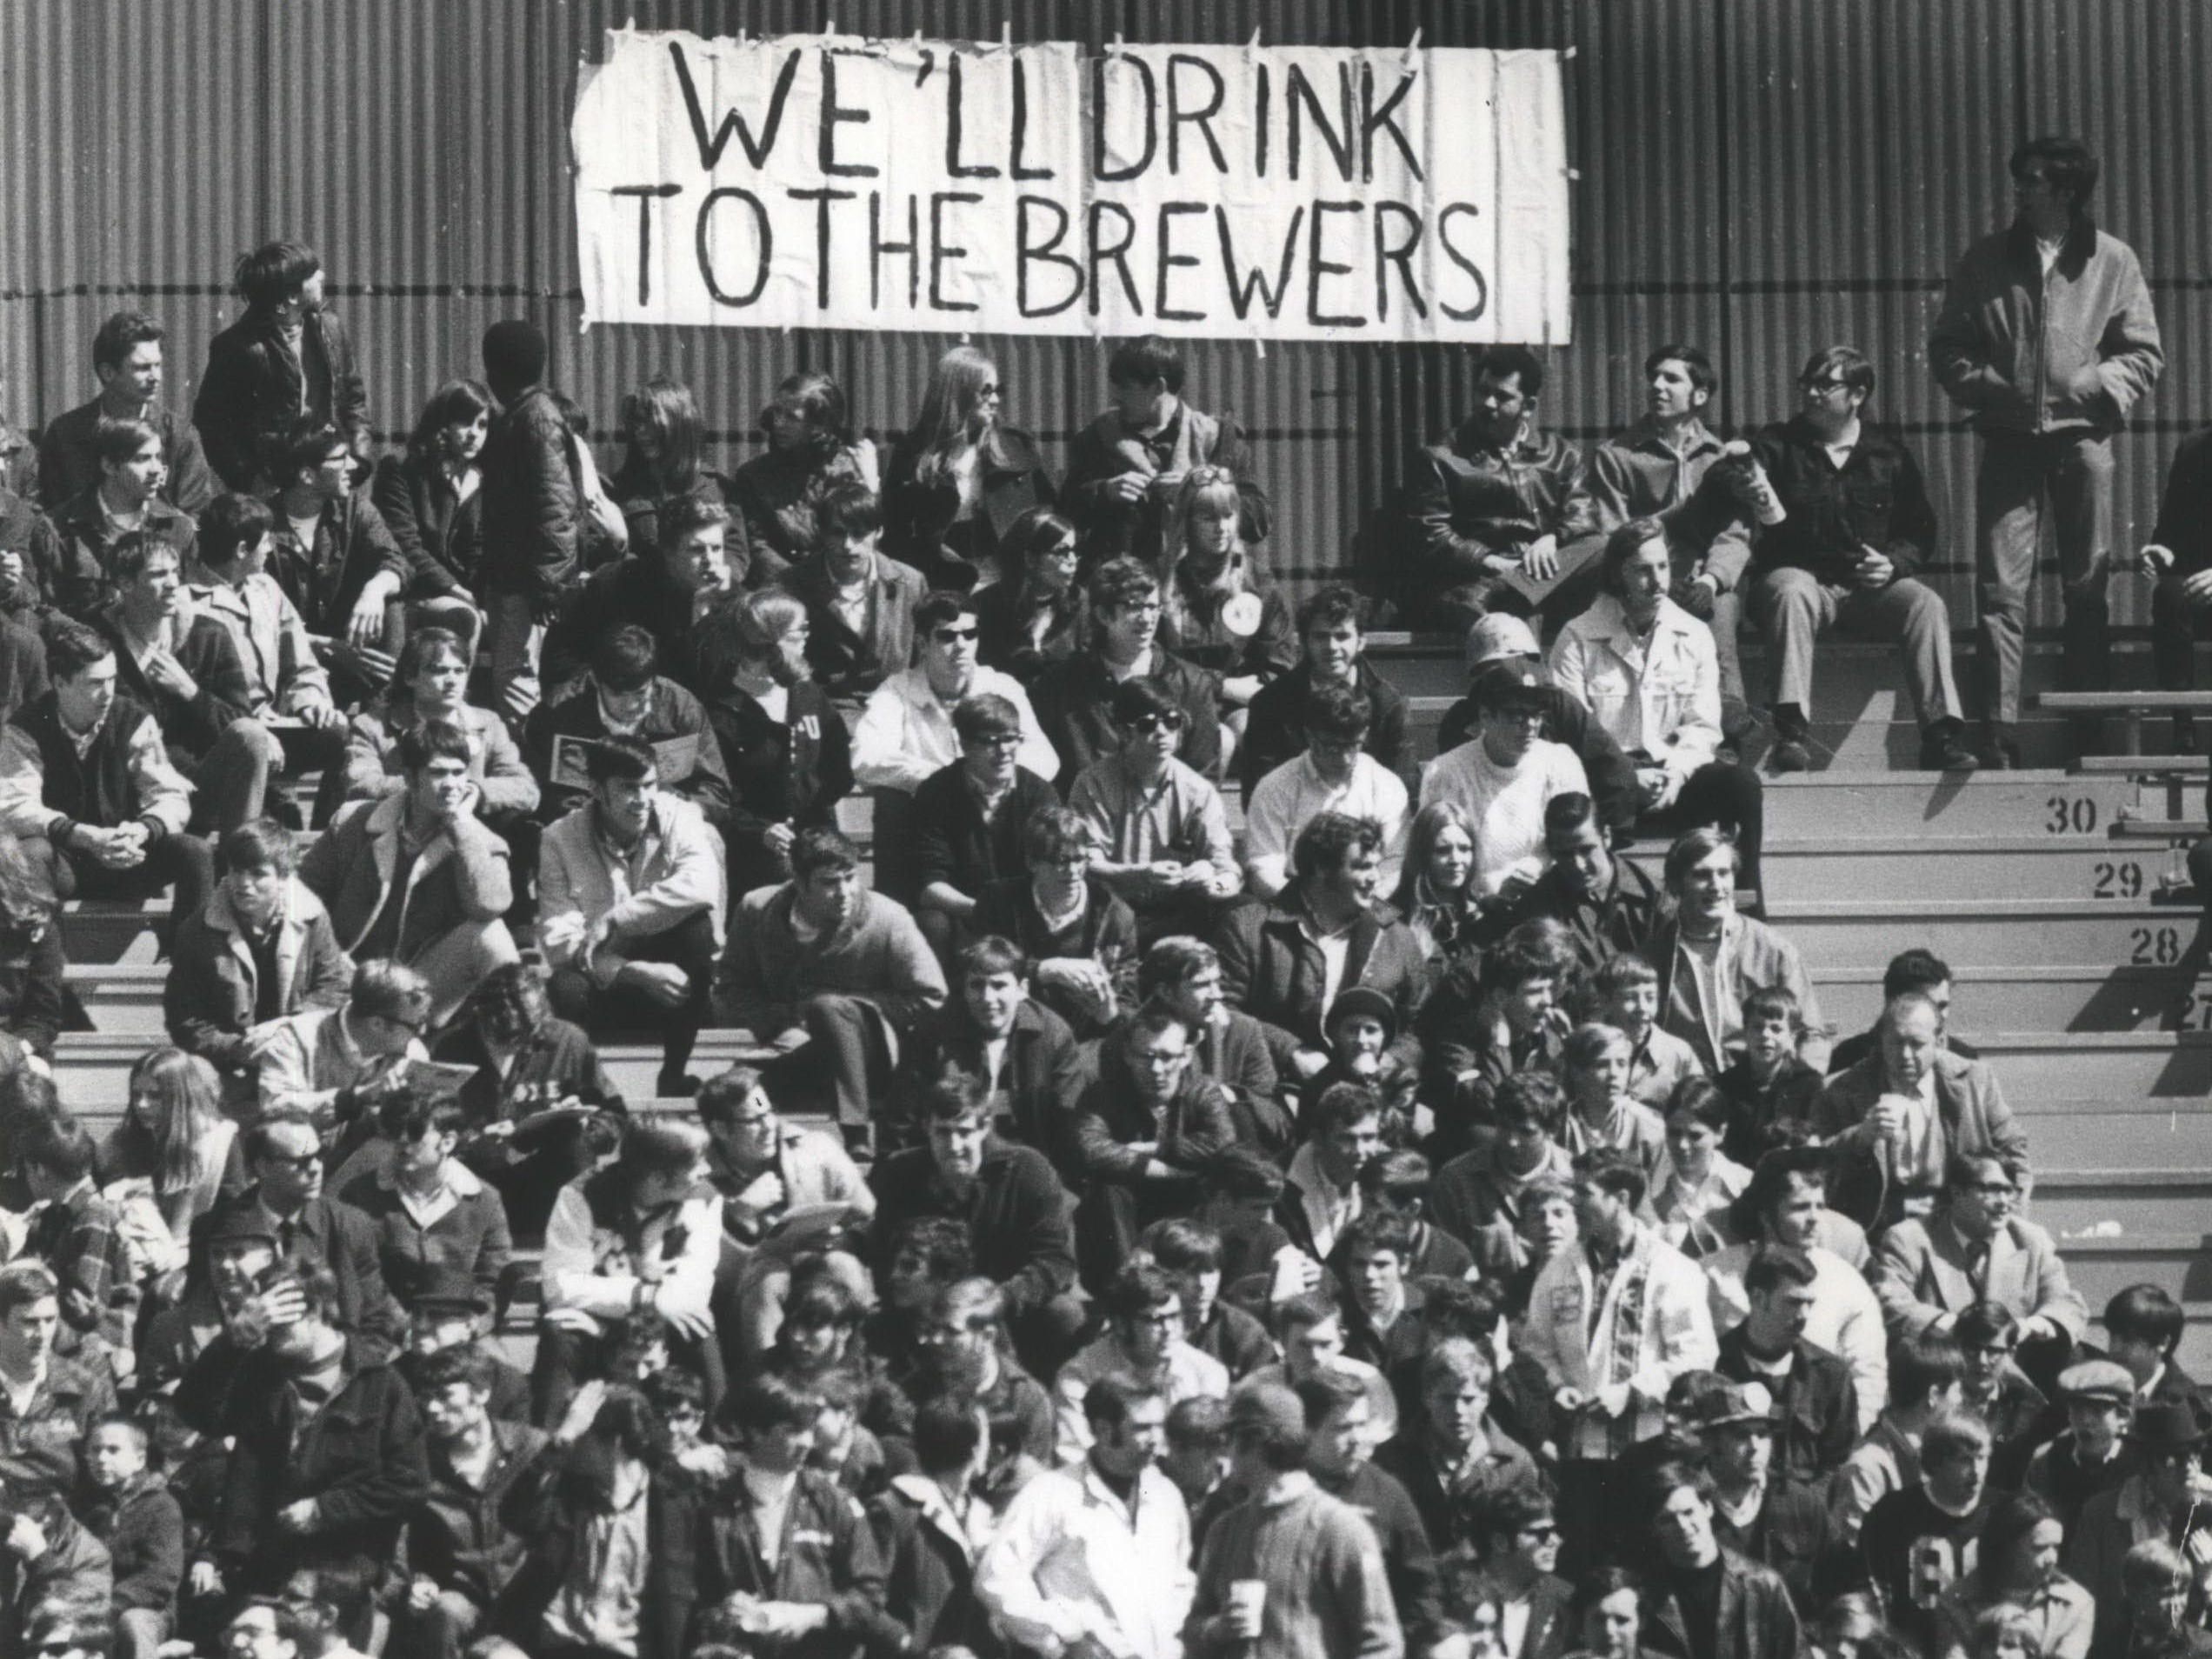 Fans in the bleachers drink a toast to the Milwaukee Brewers on April 7, 1970, the Brewers' first-ever opening day at County Stadium. The Brewers lost to the California Angels, 12-0.